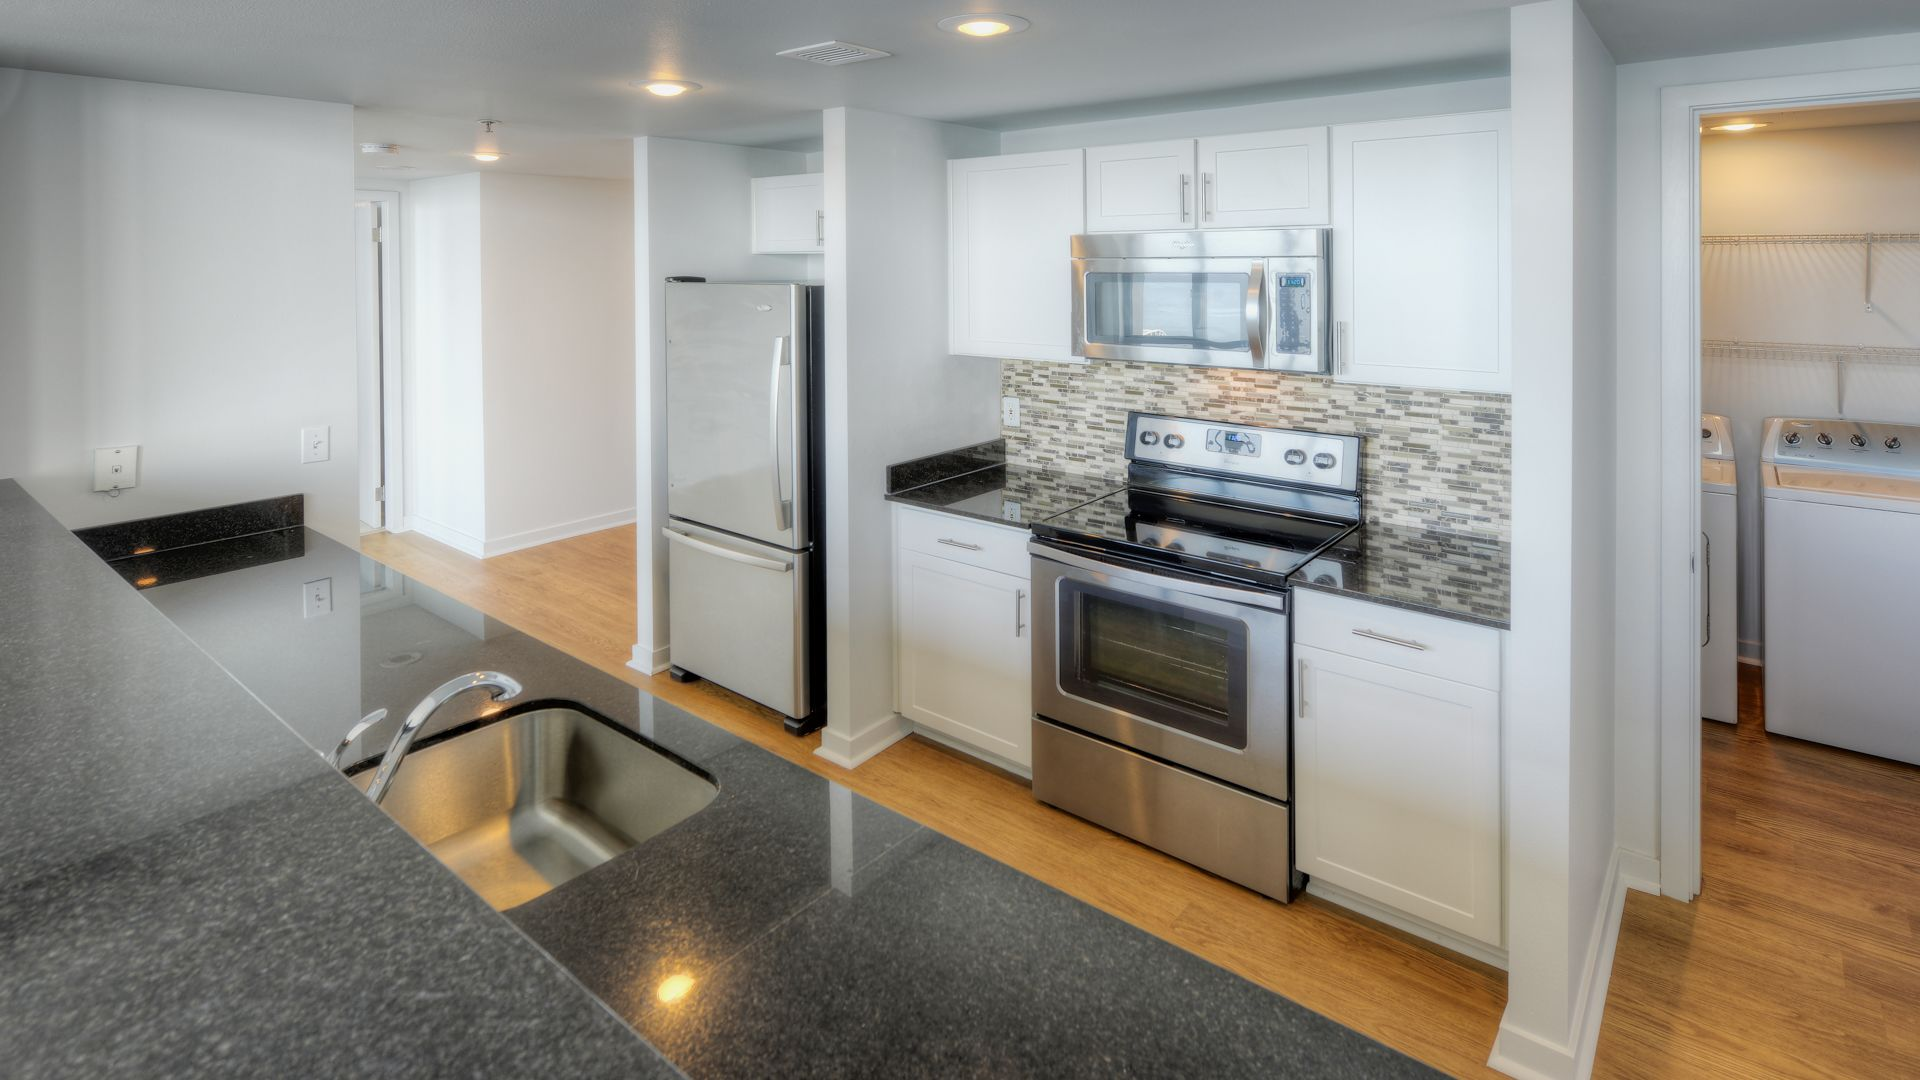 Two Bedroom Apartment Seattle : Two Bedroom Apartment Seattle. Master bedroom with king size bed Smart ...